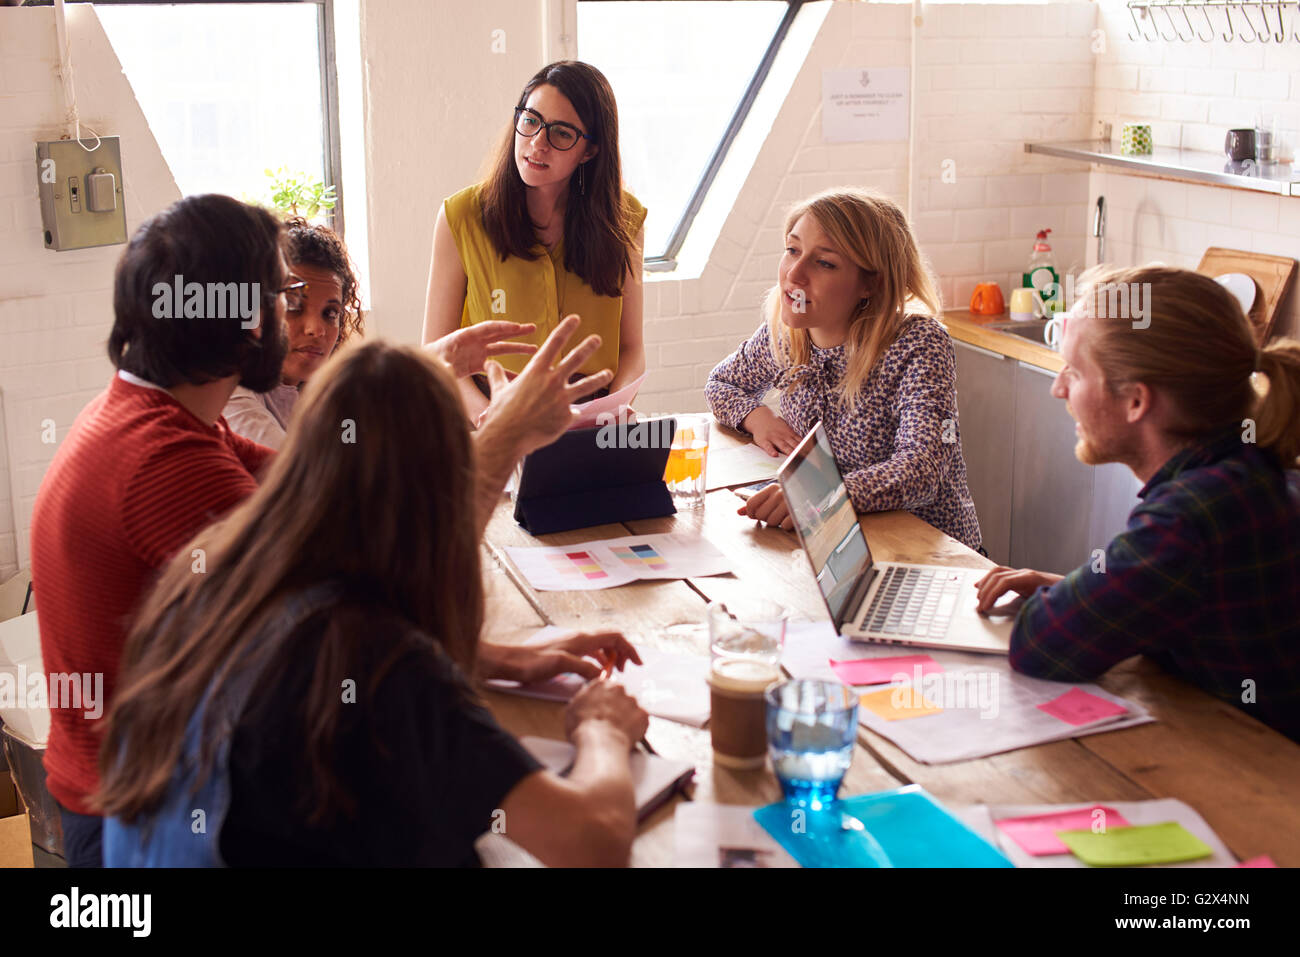 Female Manager Leads Meeting Around Table In Design Office - Stock Image